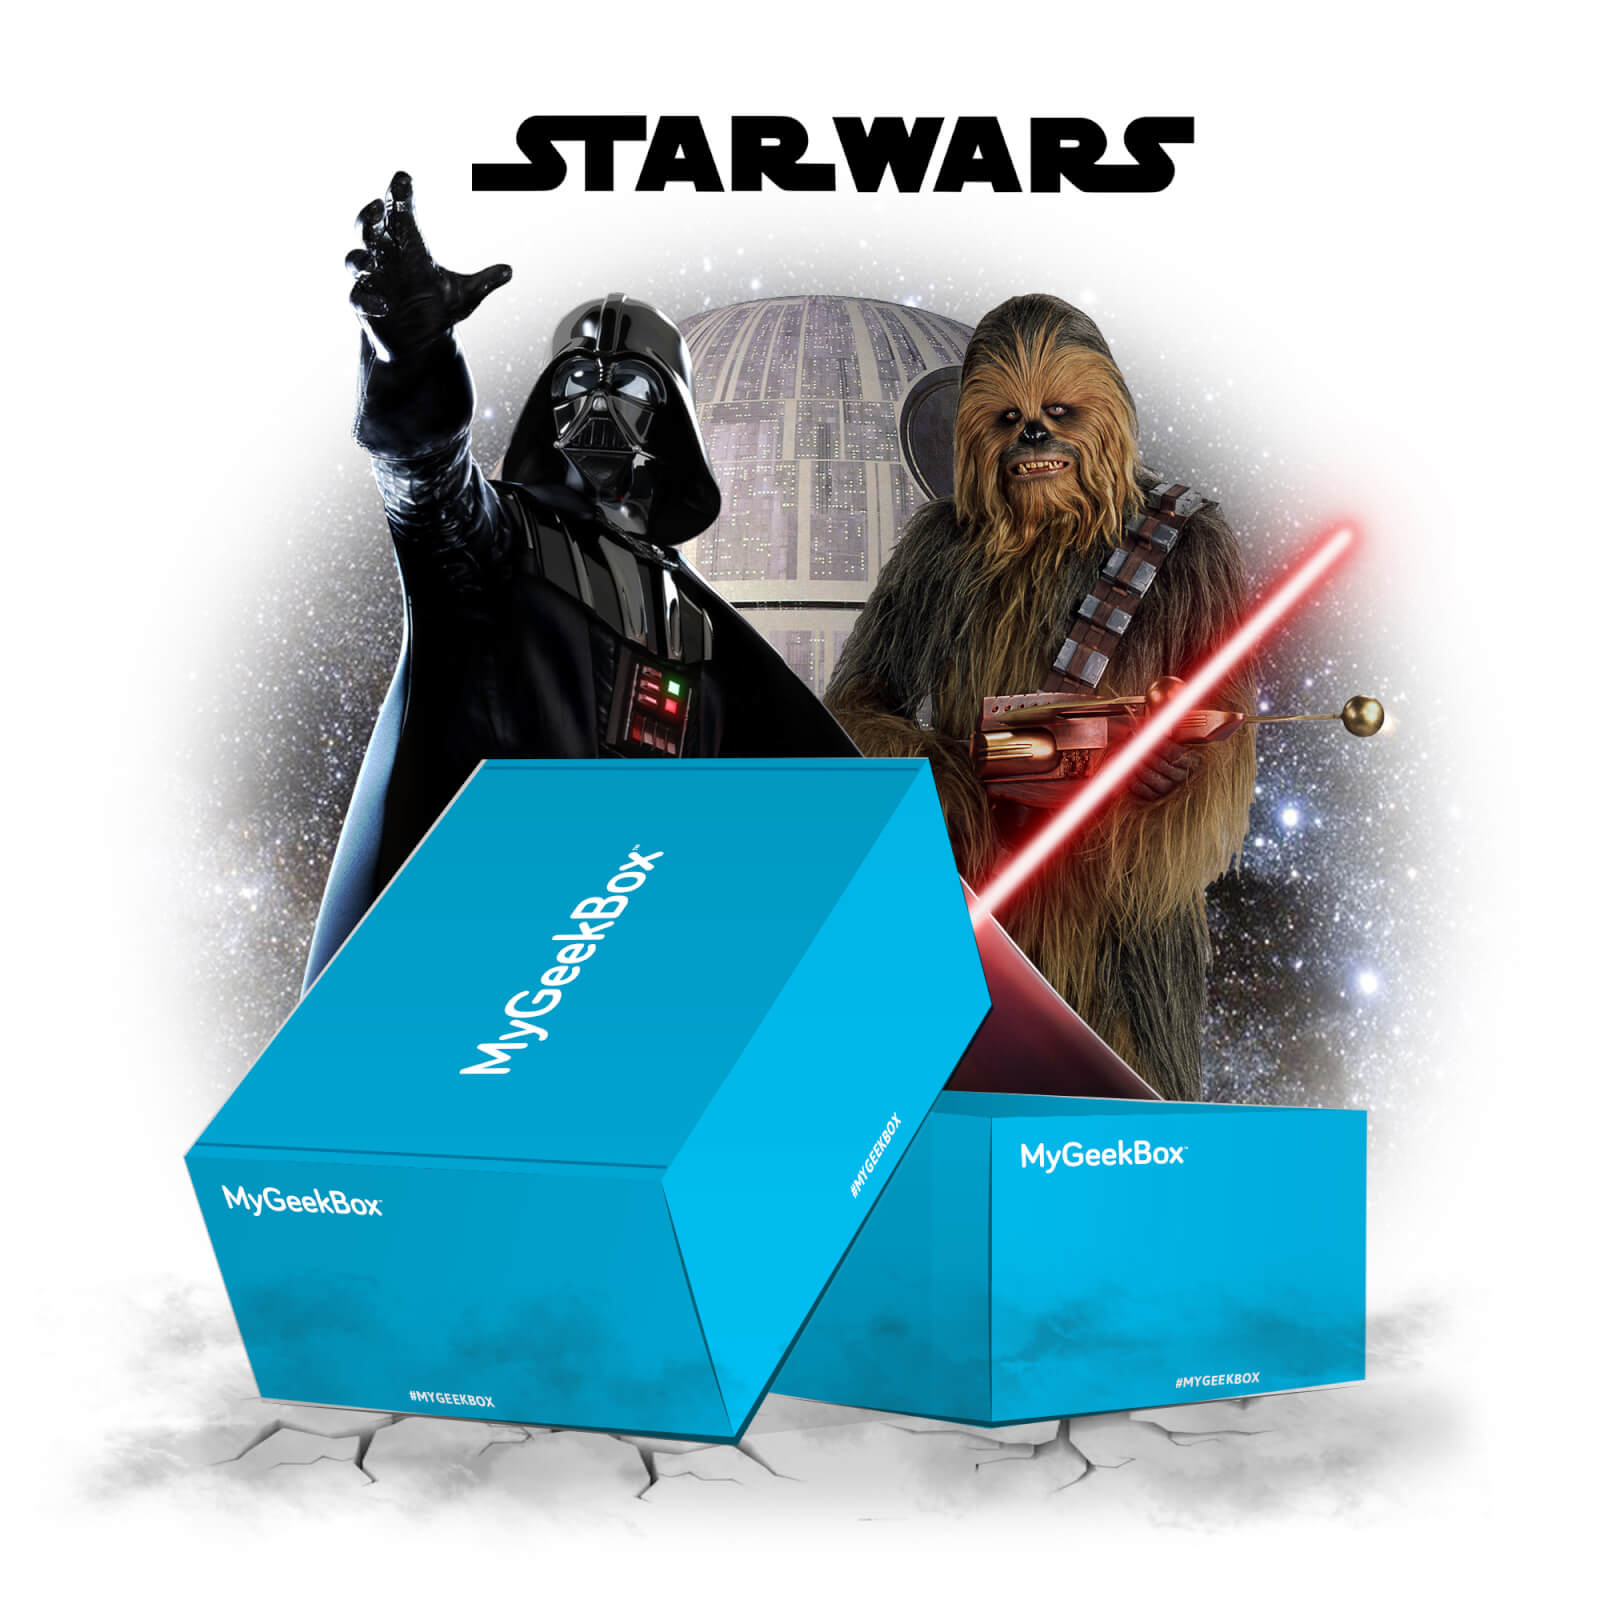 My Geek Box Star Wars Mega Crate